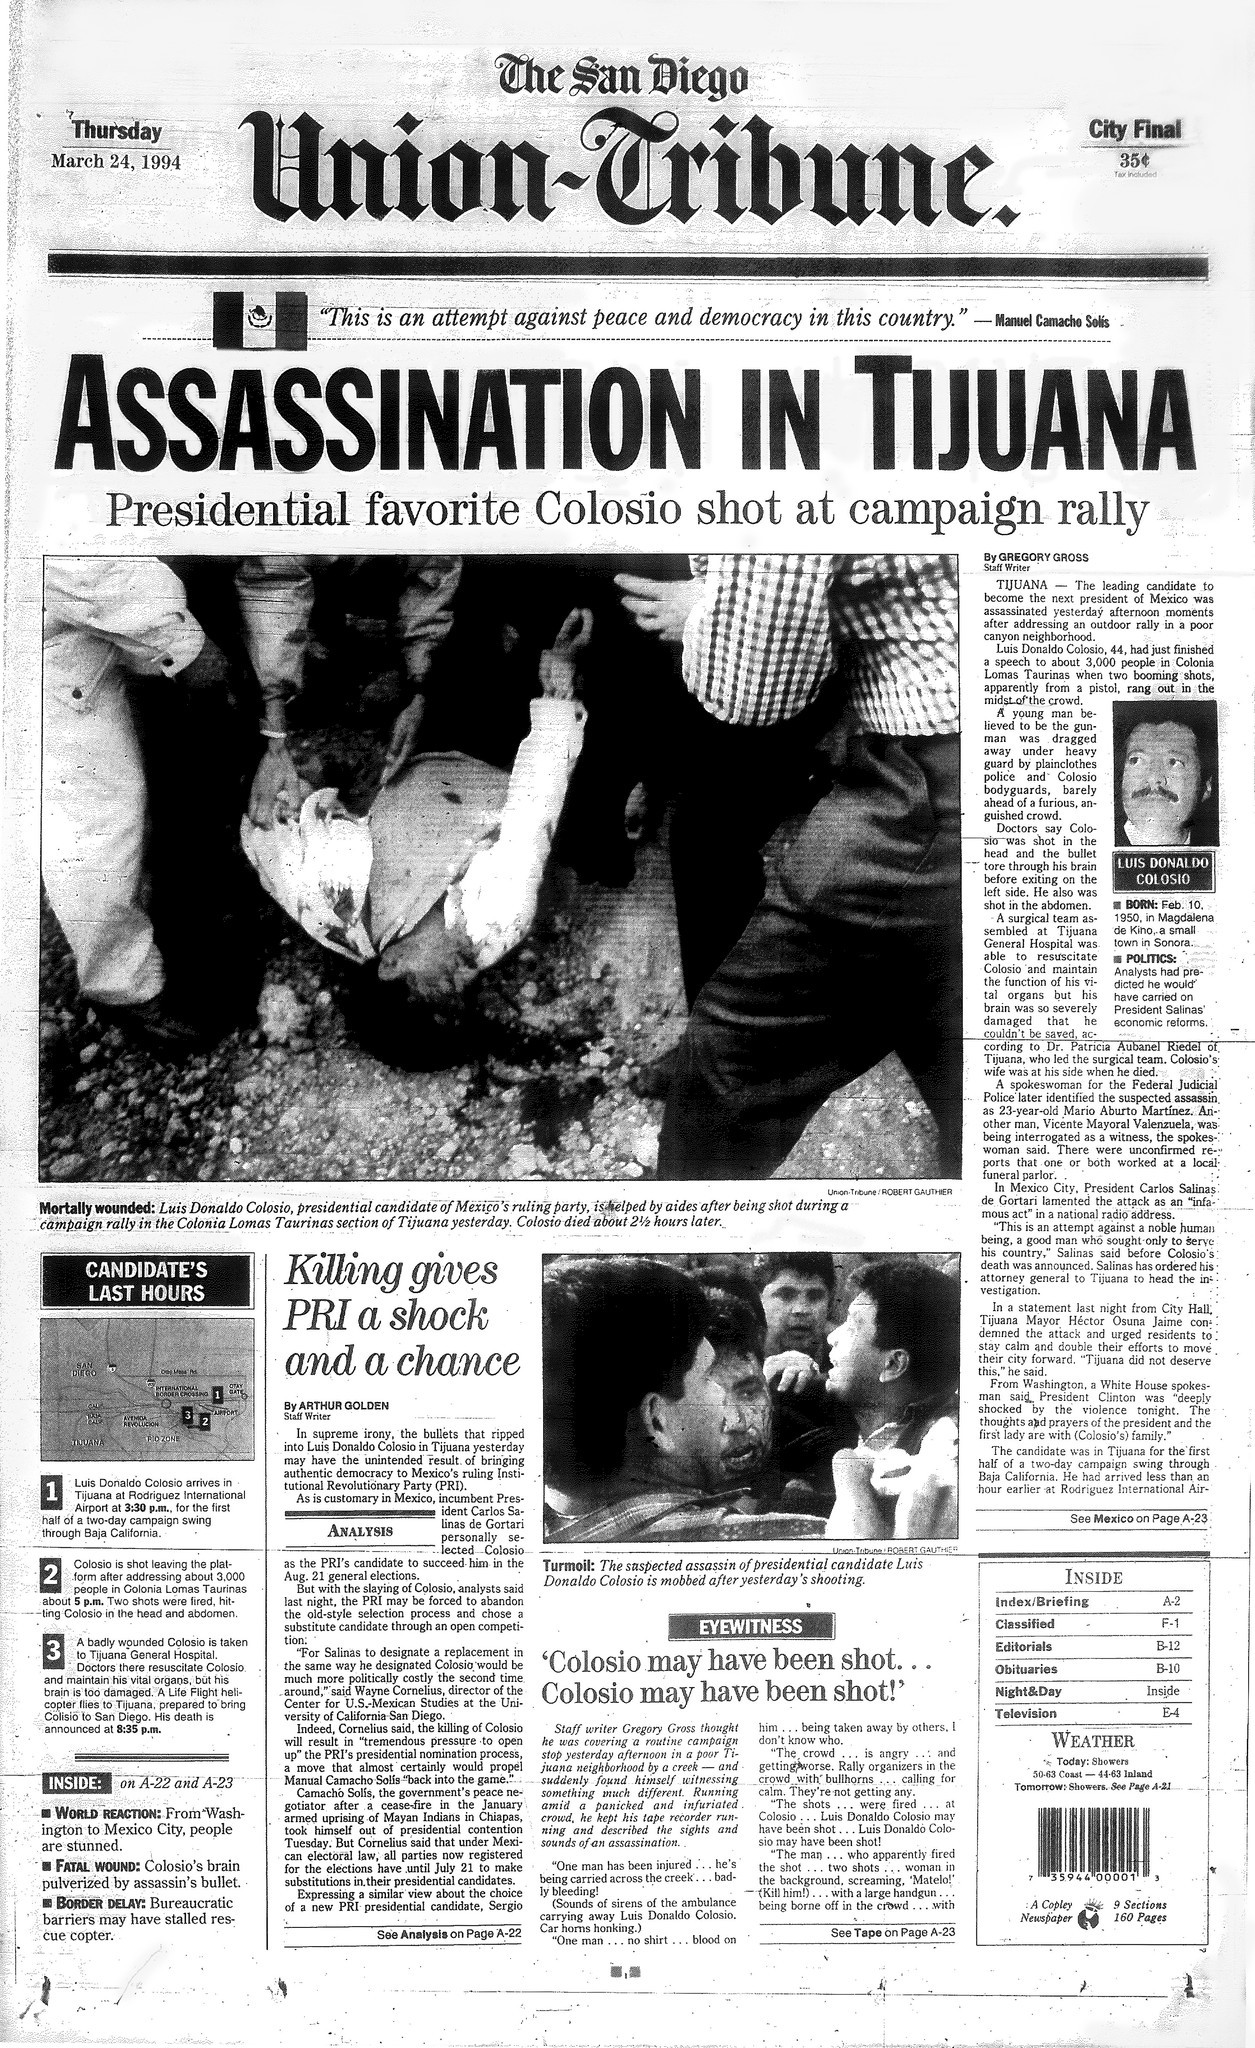 March 24, 1994